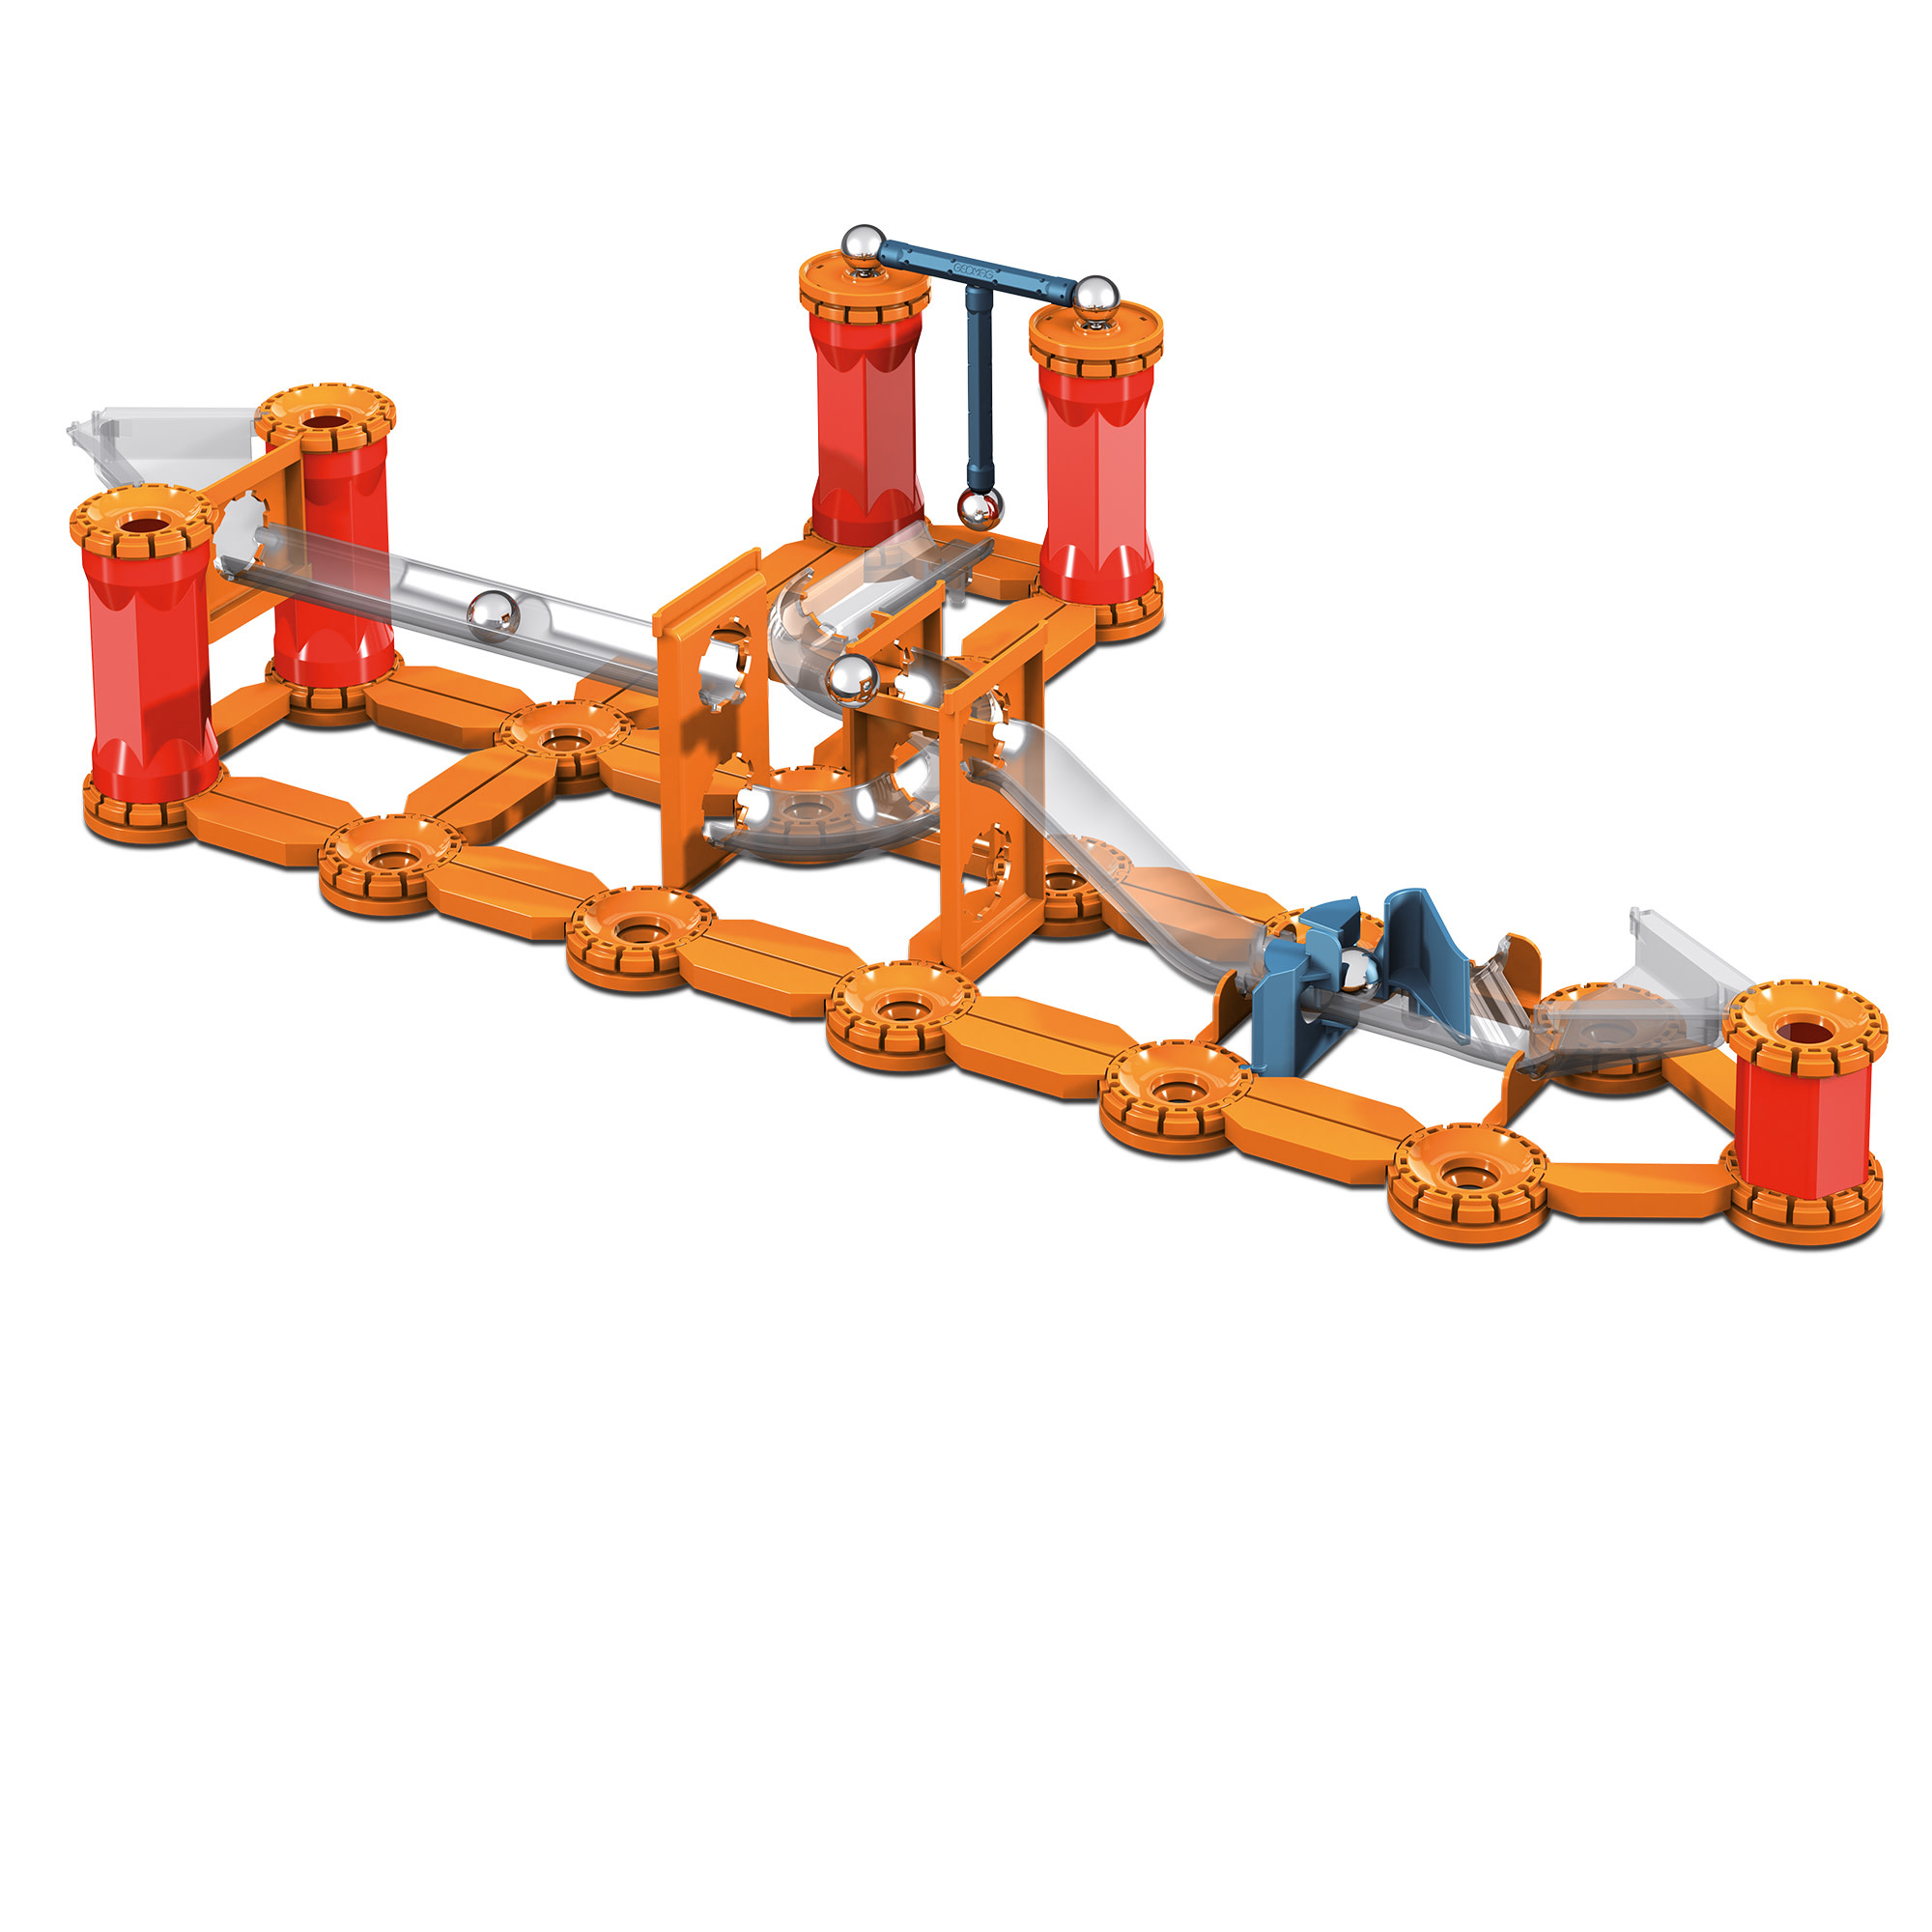 Mechanics Magnetic Track 115 pcs by Geomag